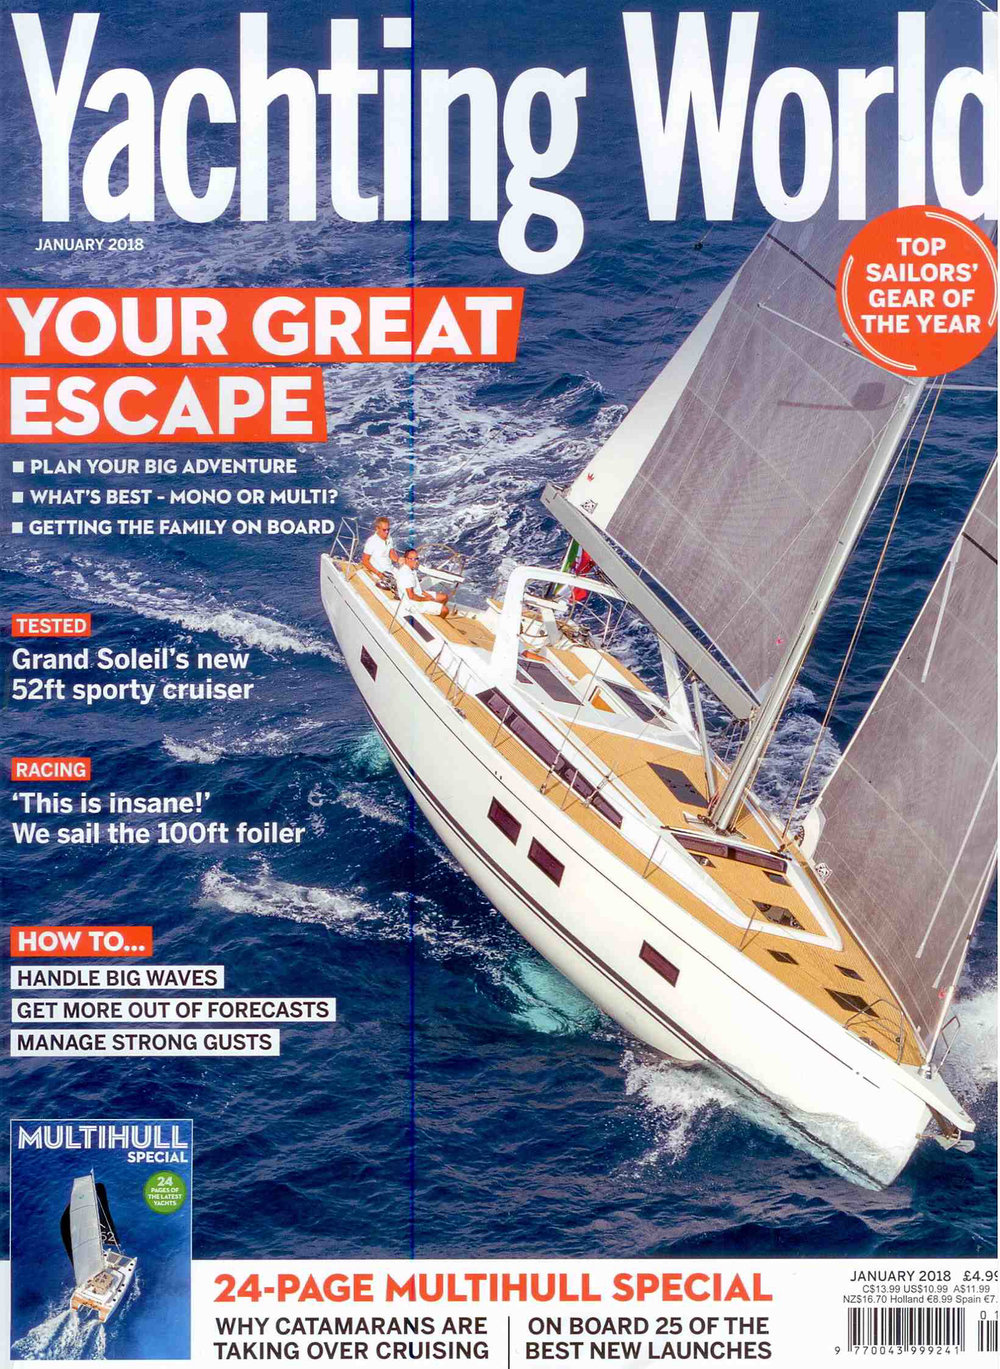 Yachting World  - January 2018 Multihull Special